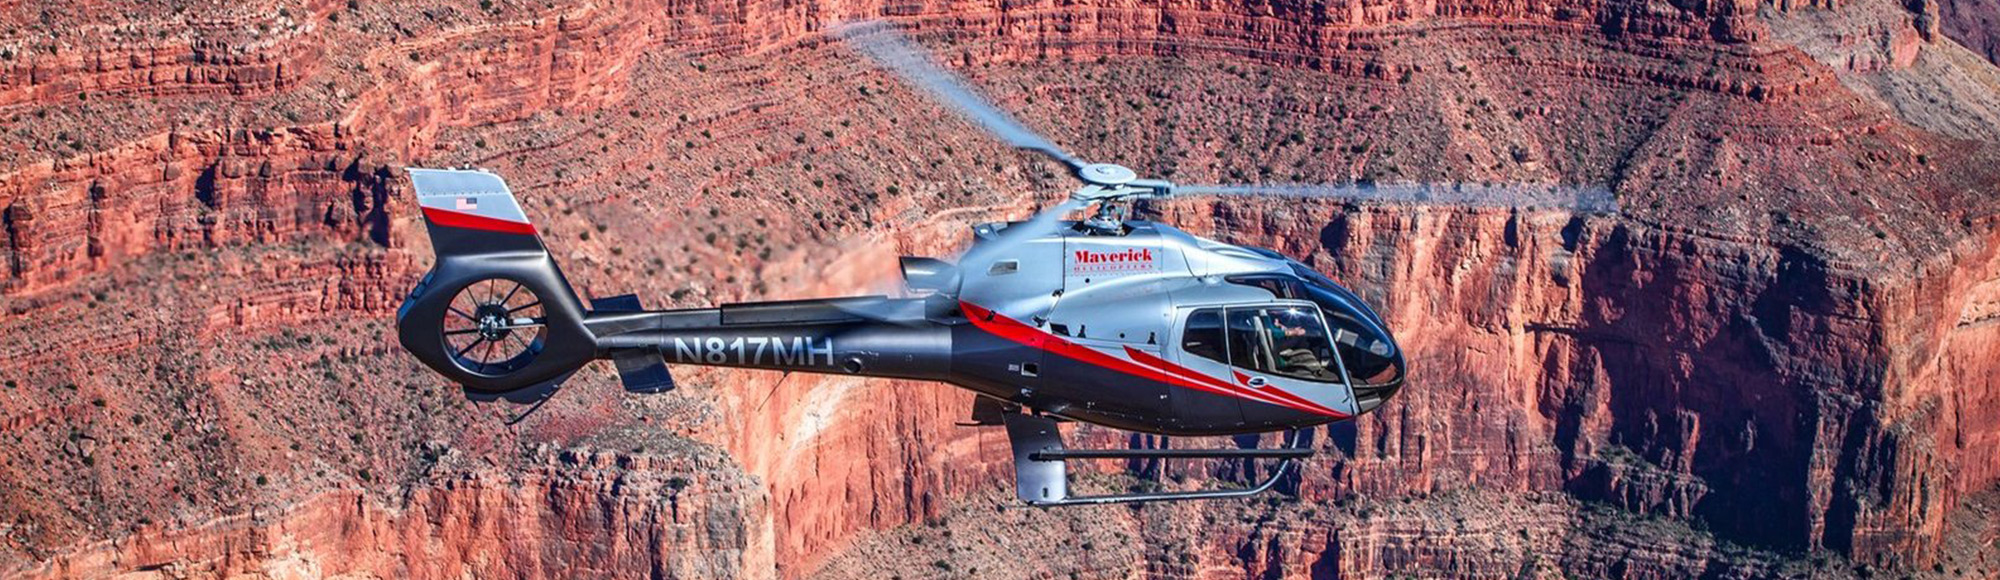 Grand Canyon West Rim & Helicopter 6 in 1 tour